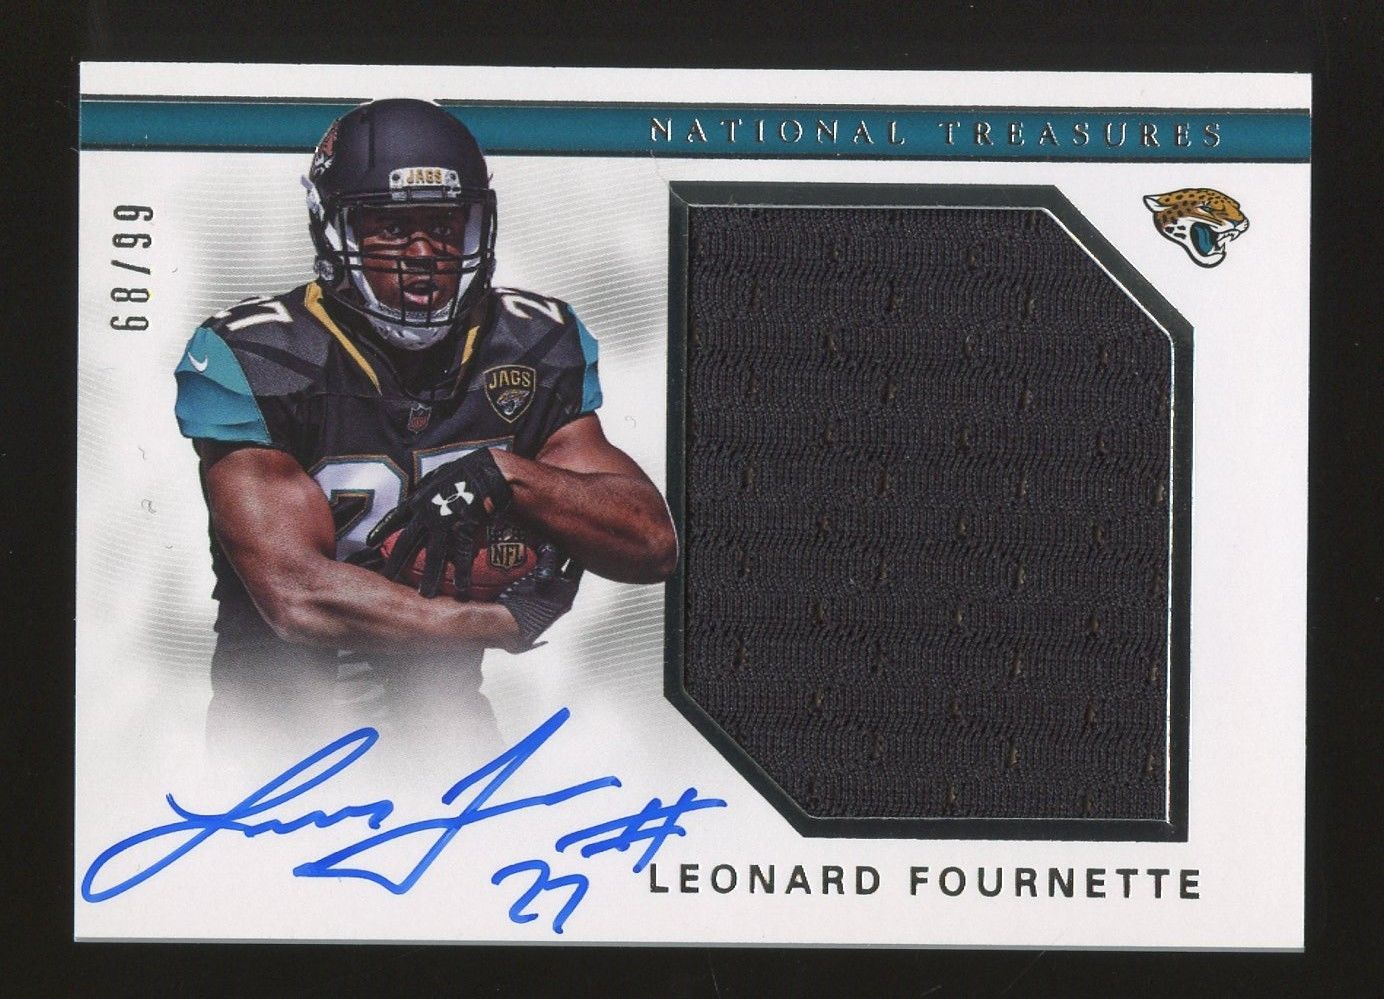 2017 National Treasures Leonard Fournette Jaguars Rc Rookie Jersey Auto 99 Footballcards National Treasure Jaguars Football Cards